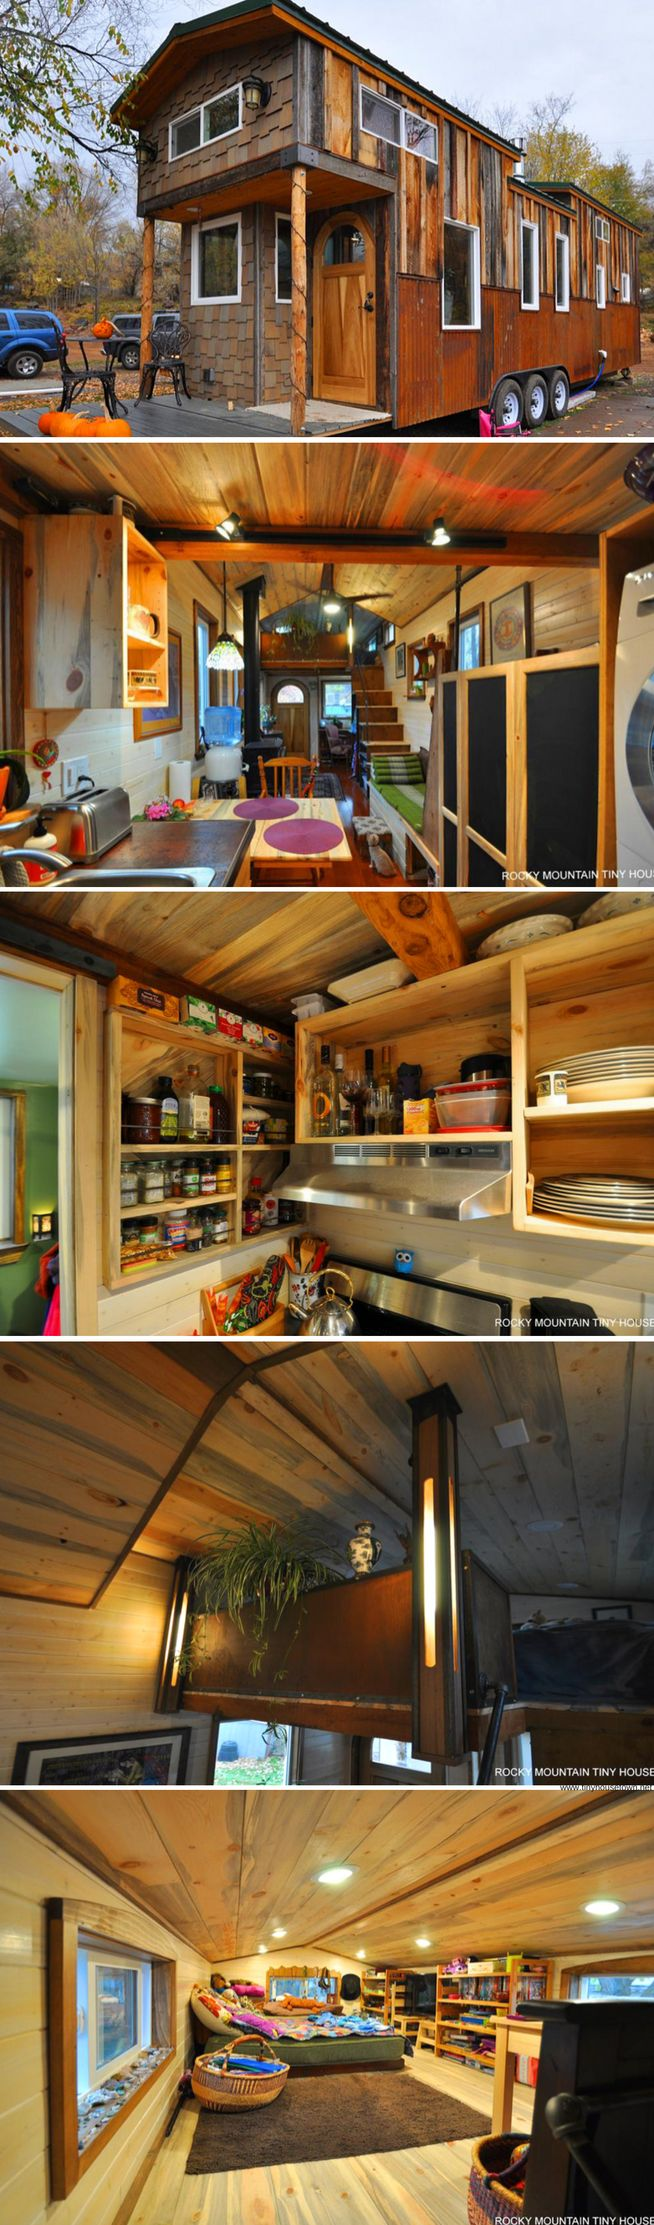 f57bd9d50978ca5c8e584e93d80e1c48  mountain tiny house mobile tiny house Genial Hellviolette Schlafzimmerideen Phe2